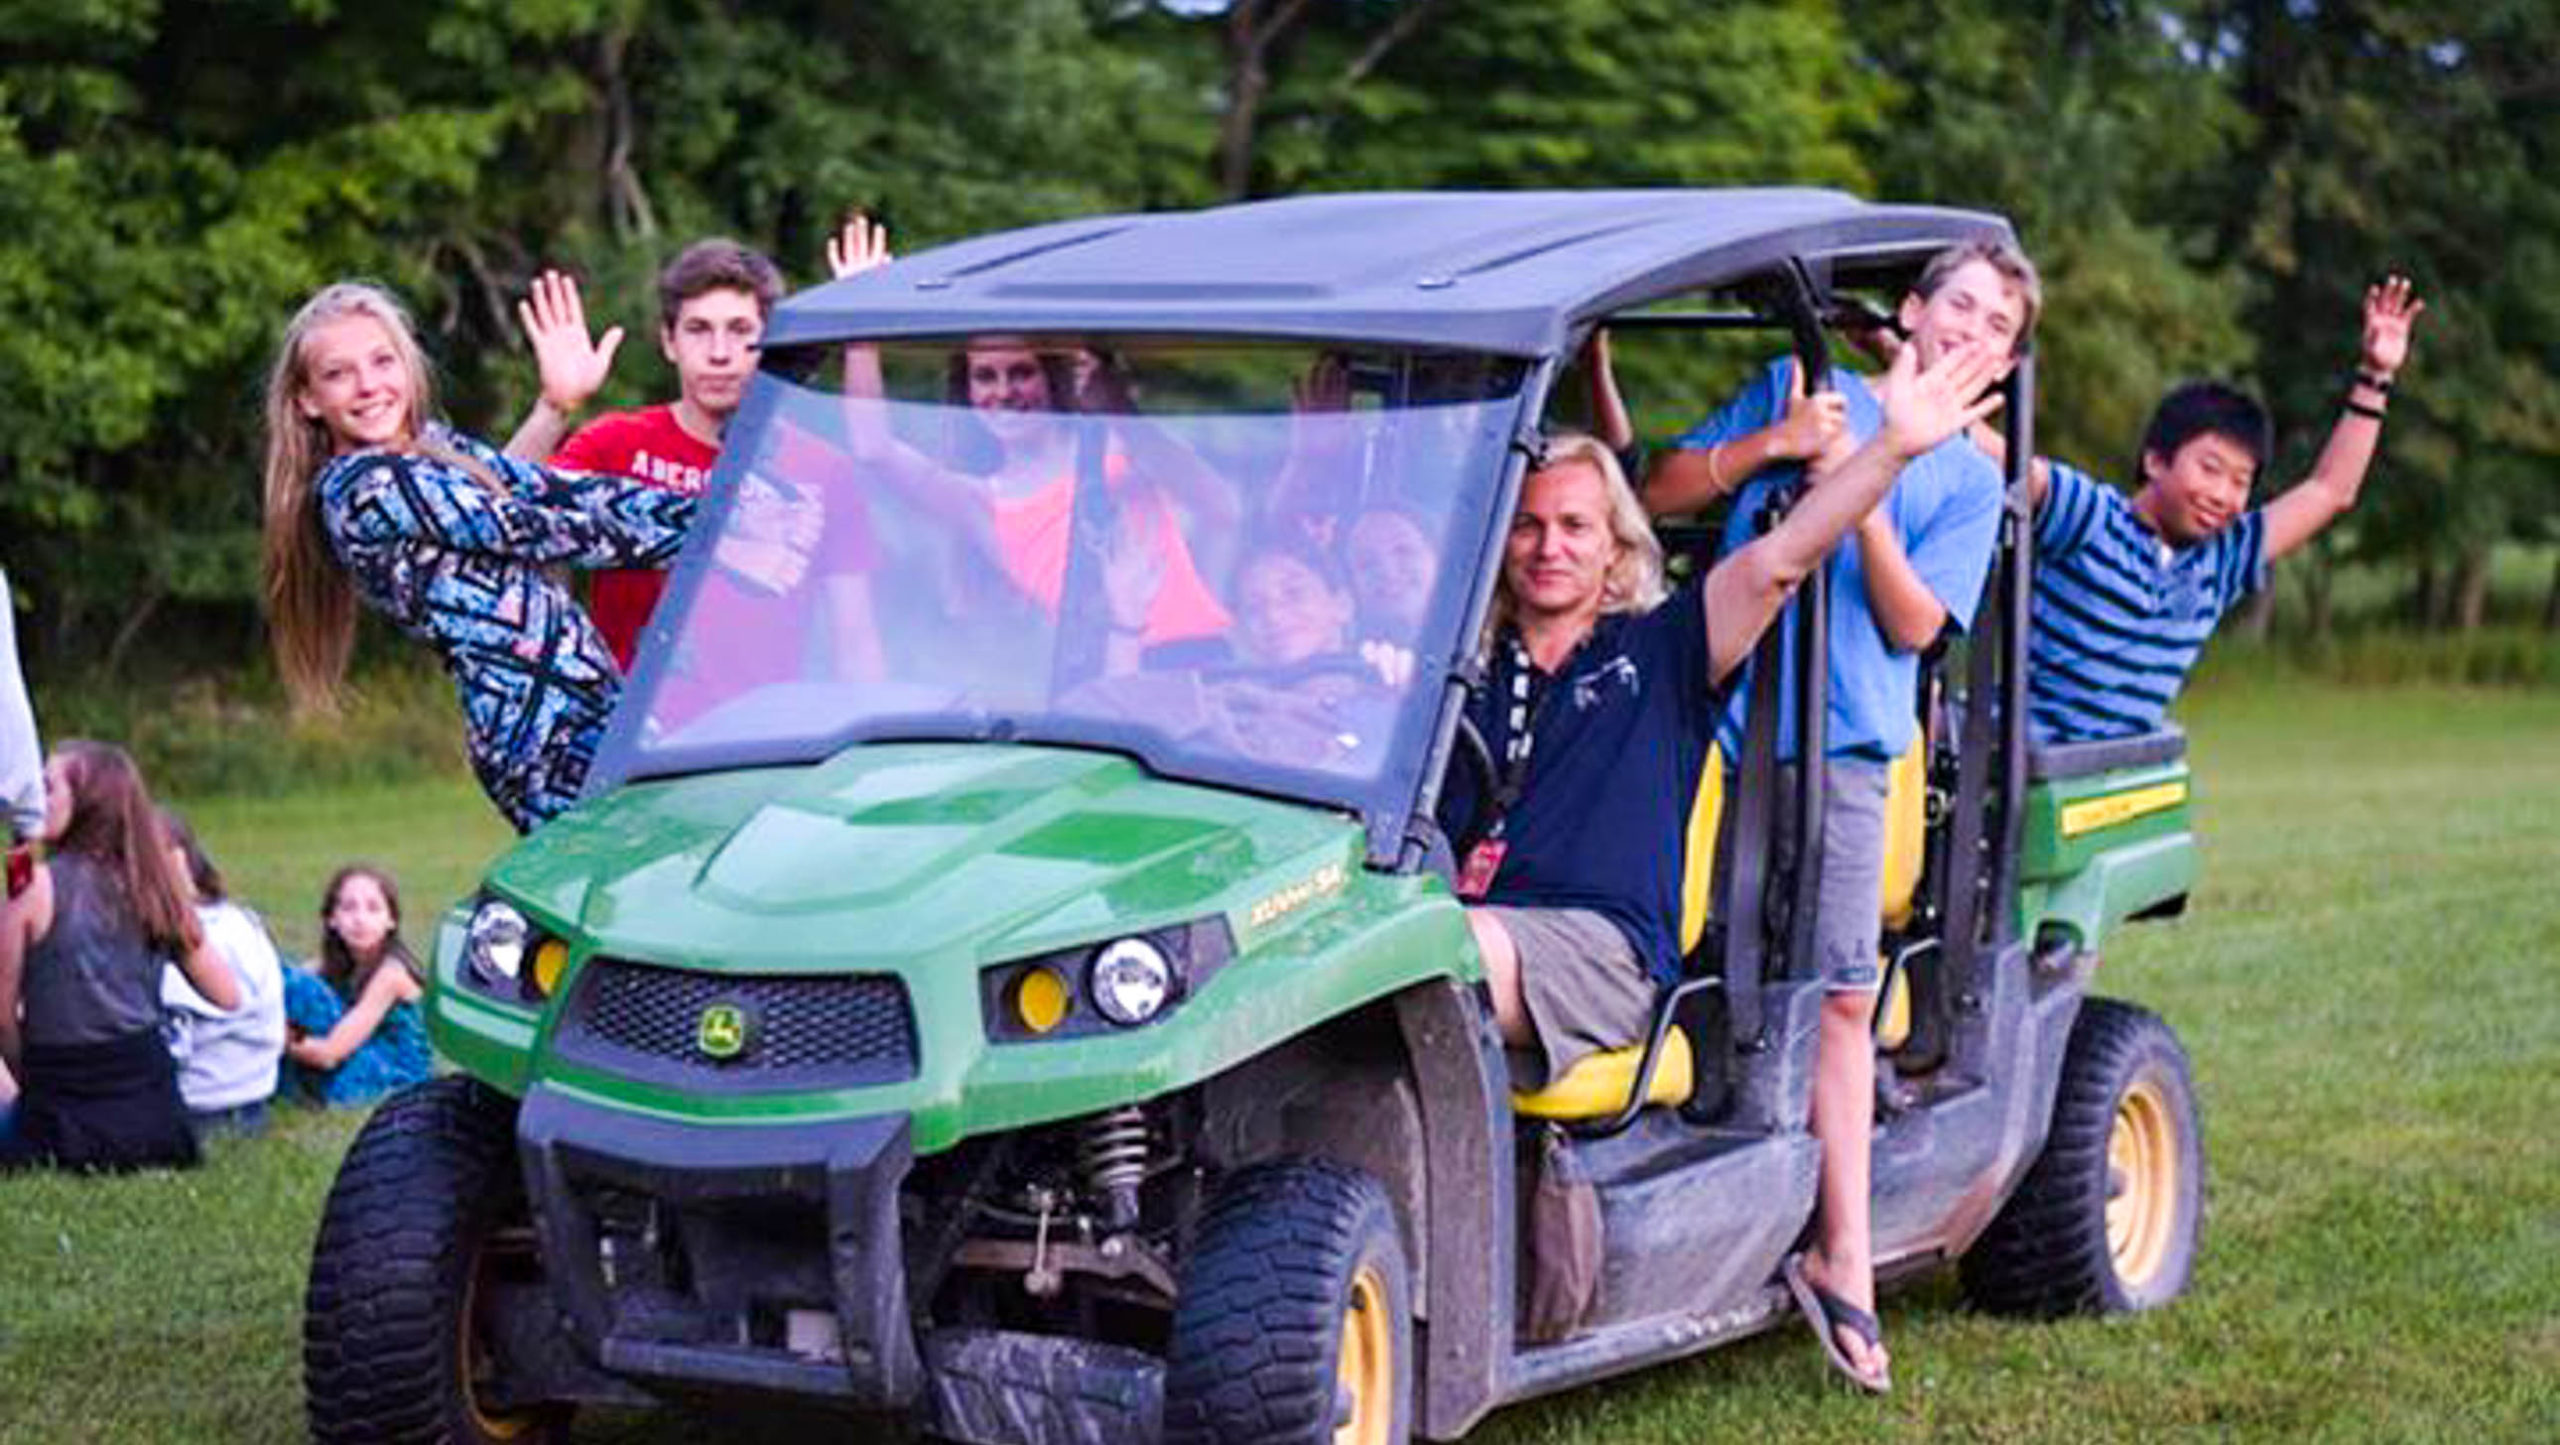 Director Nigel driving a golf cart with a bunch of campers